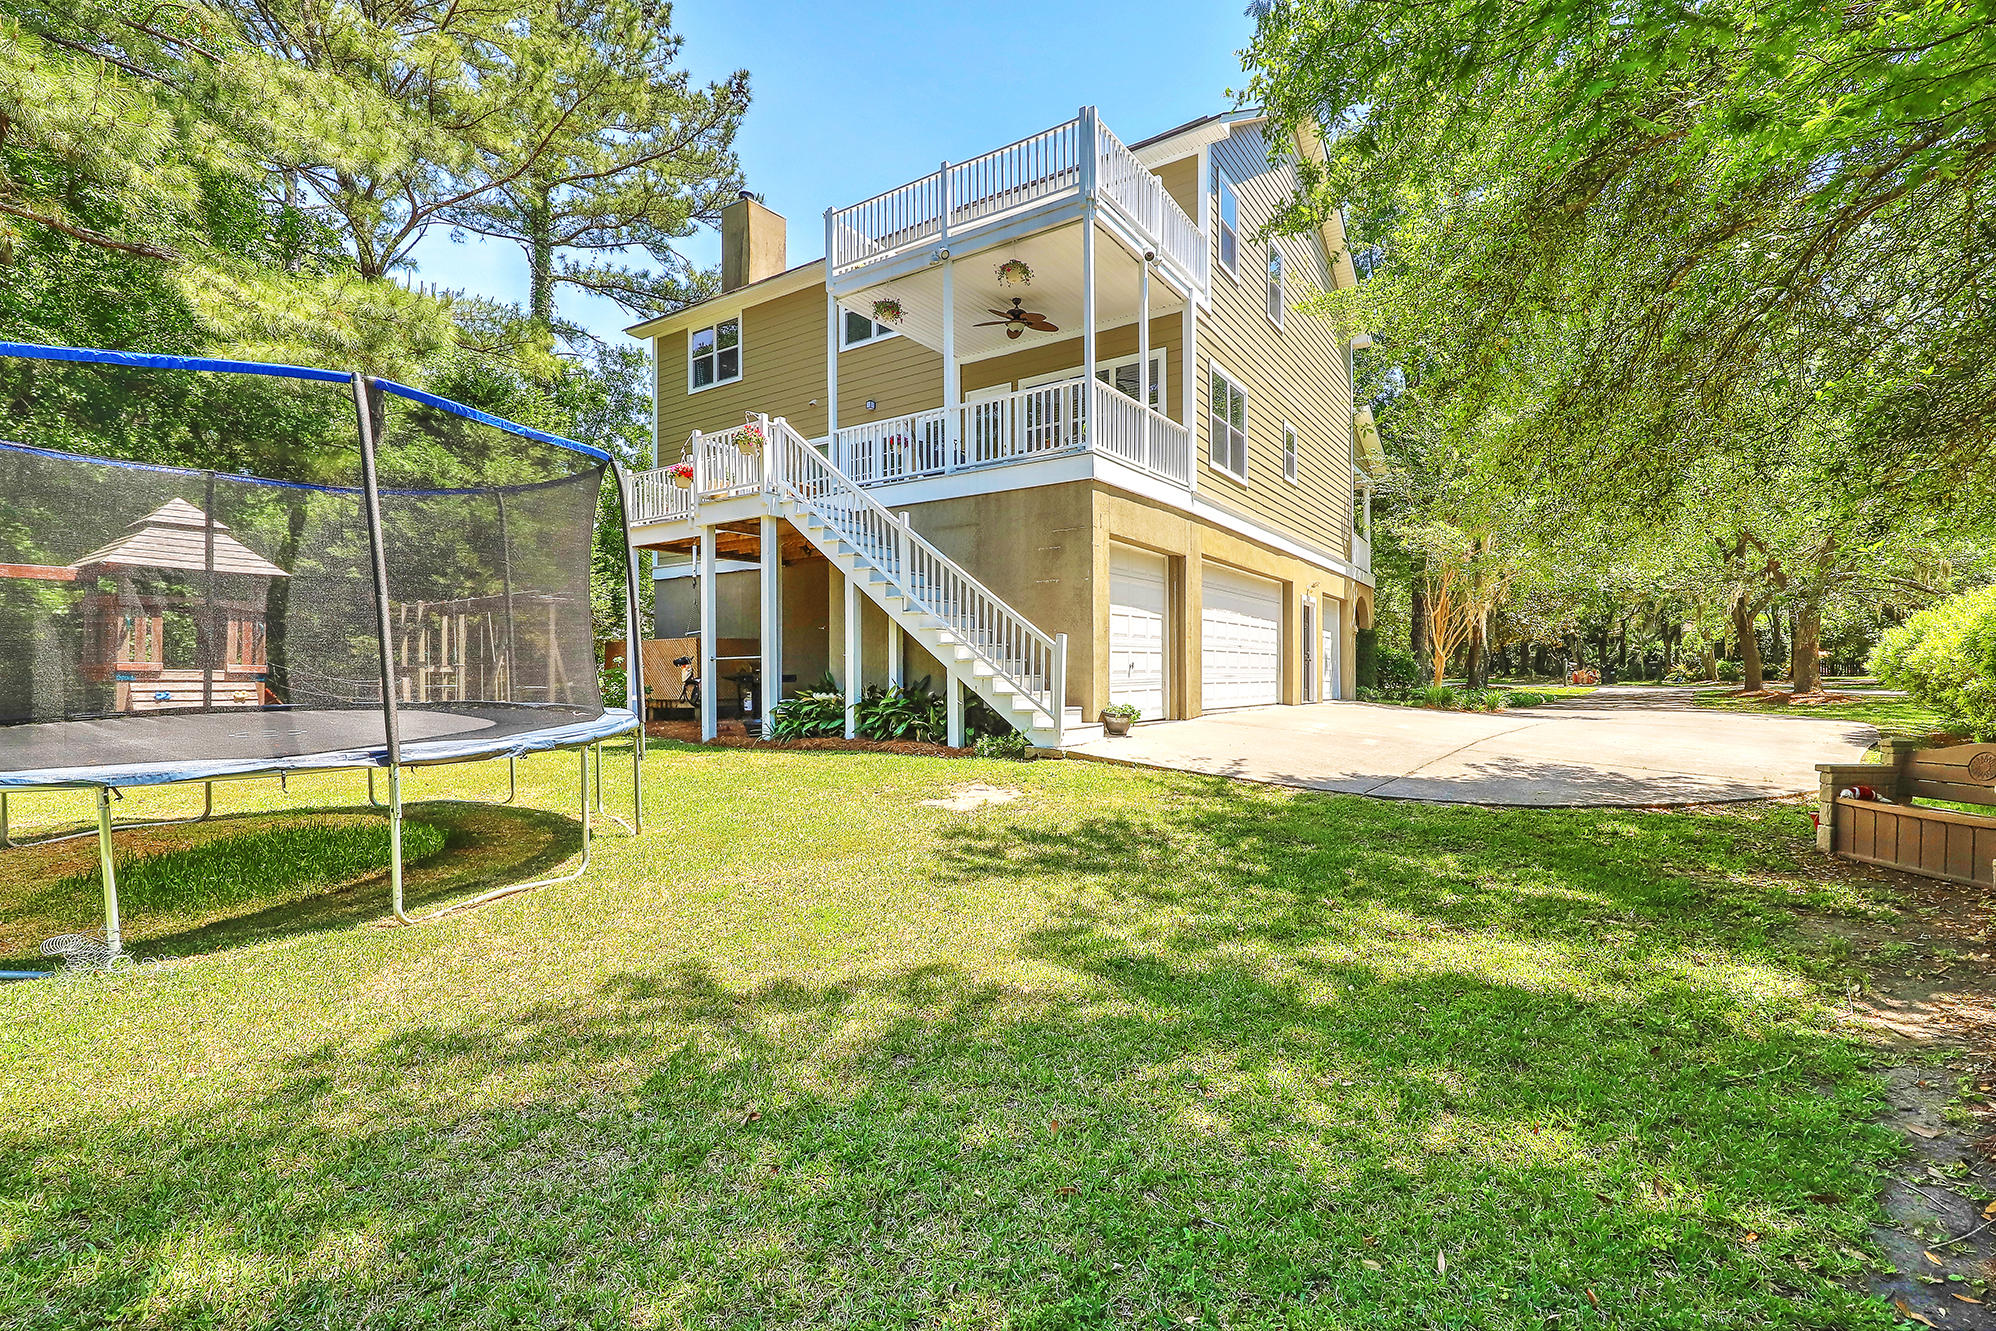 Stono Ferry Homes For Sale - 5104 St Ann, Hollywood, SC - 50